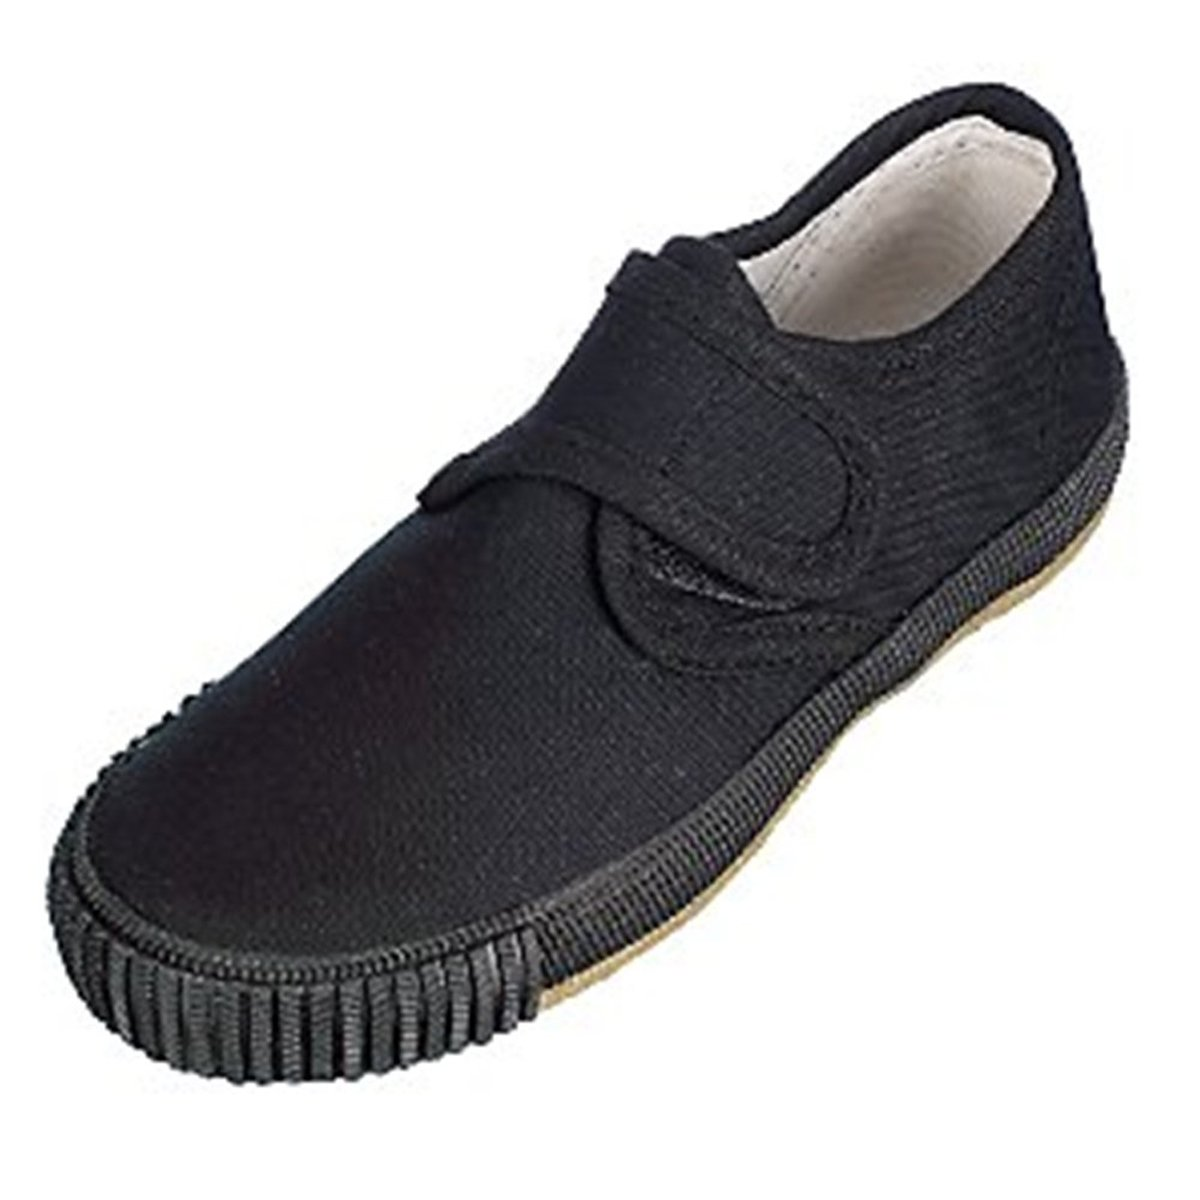 Black Velcro Plimsoll Size 10, Pack Of 2